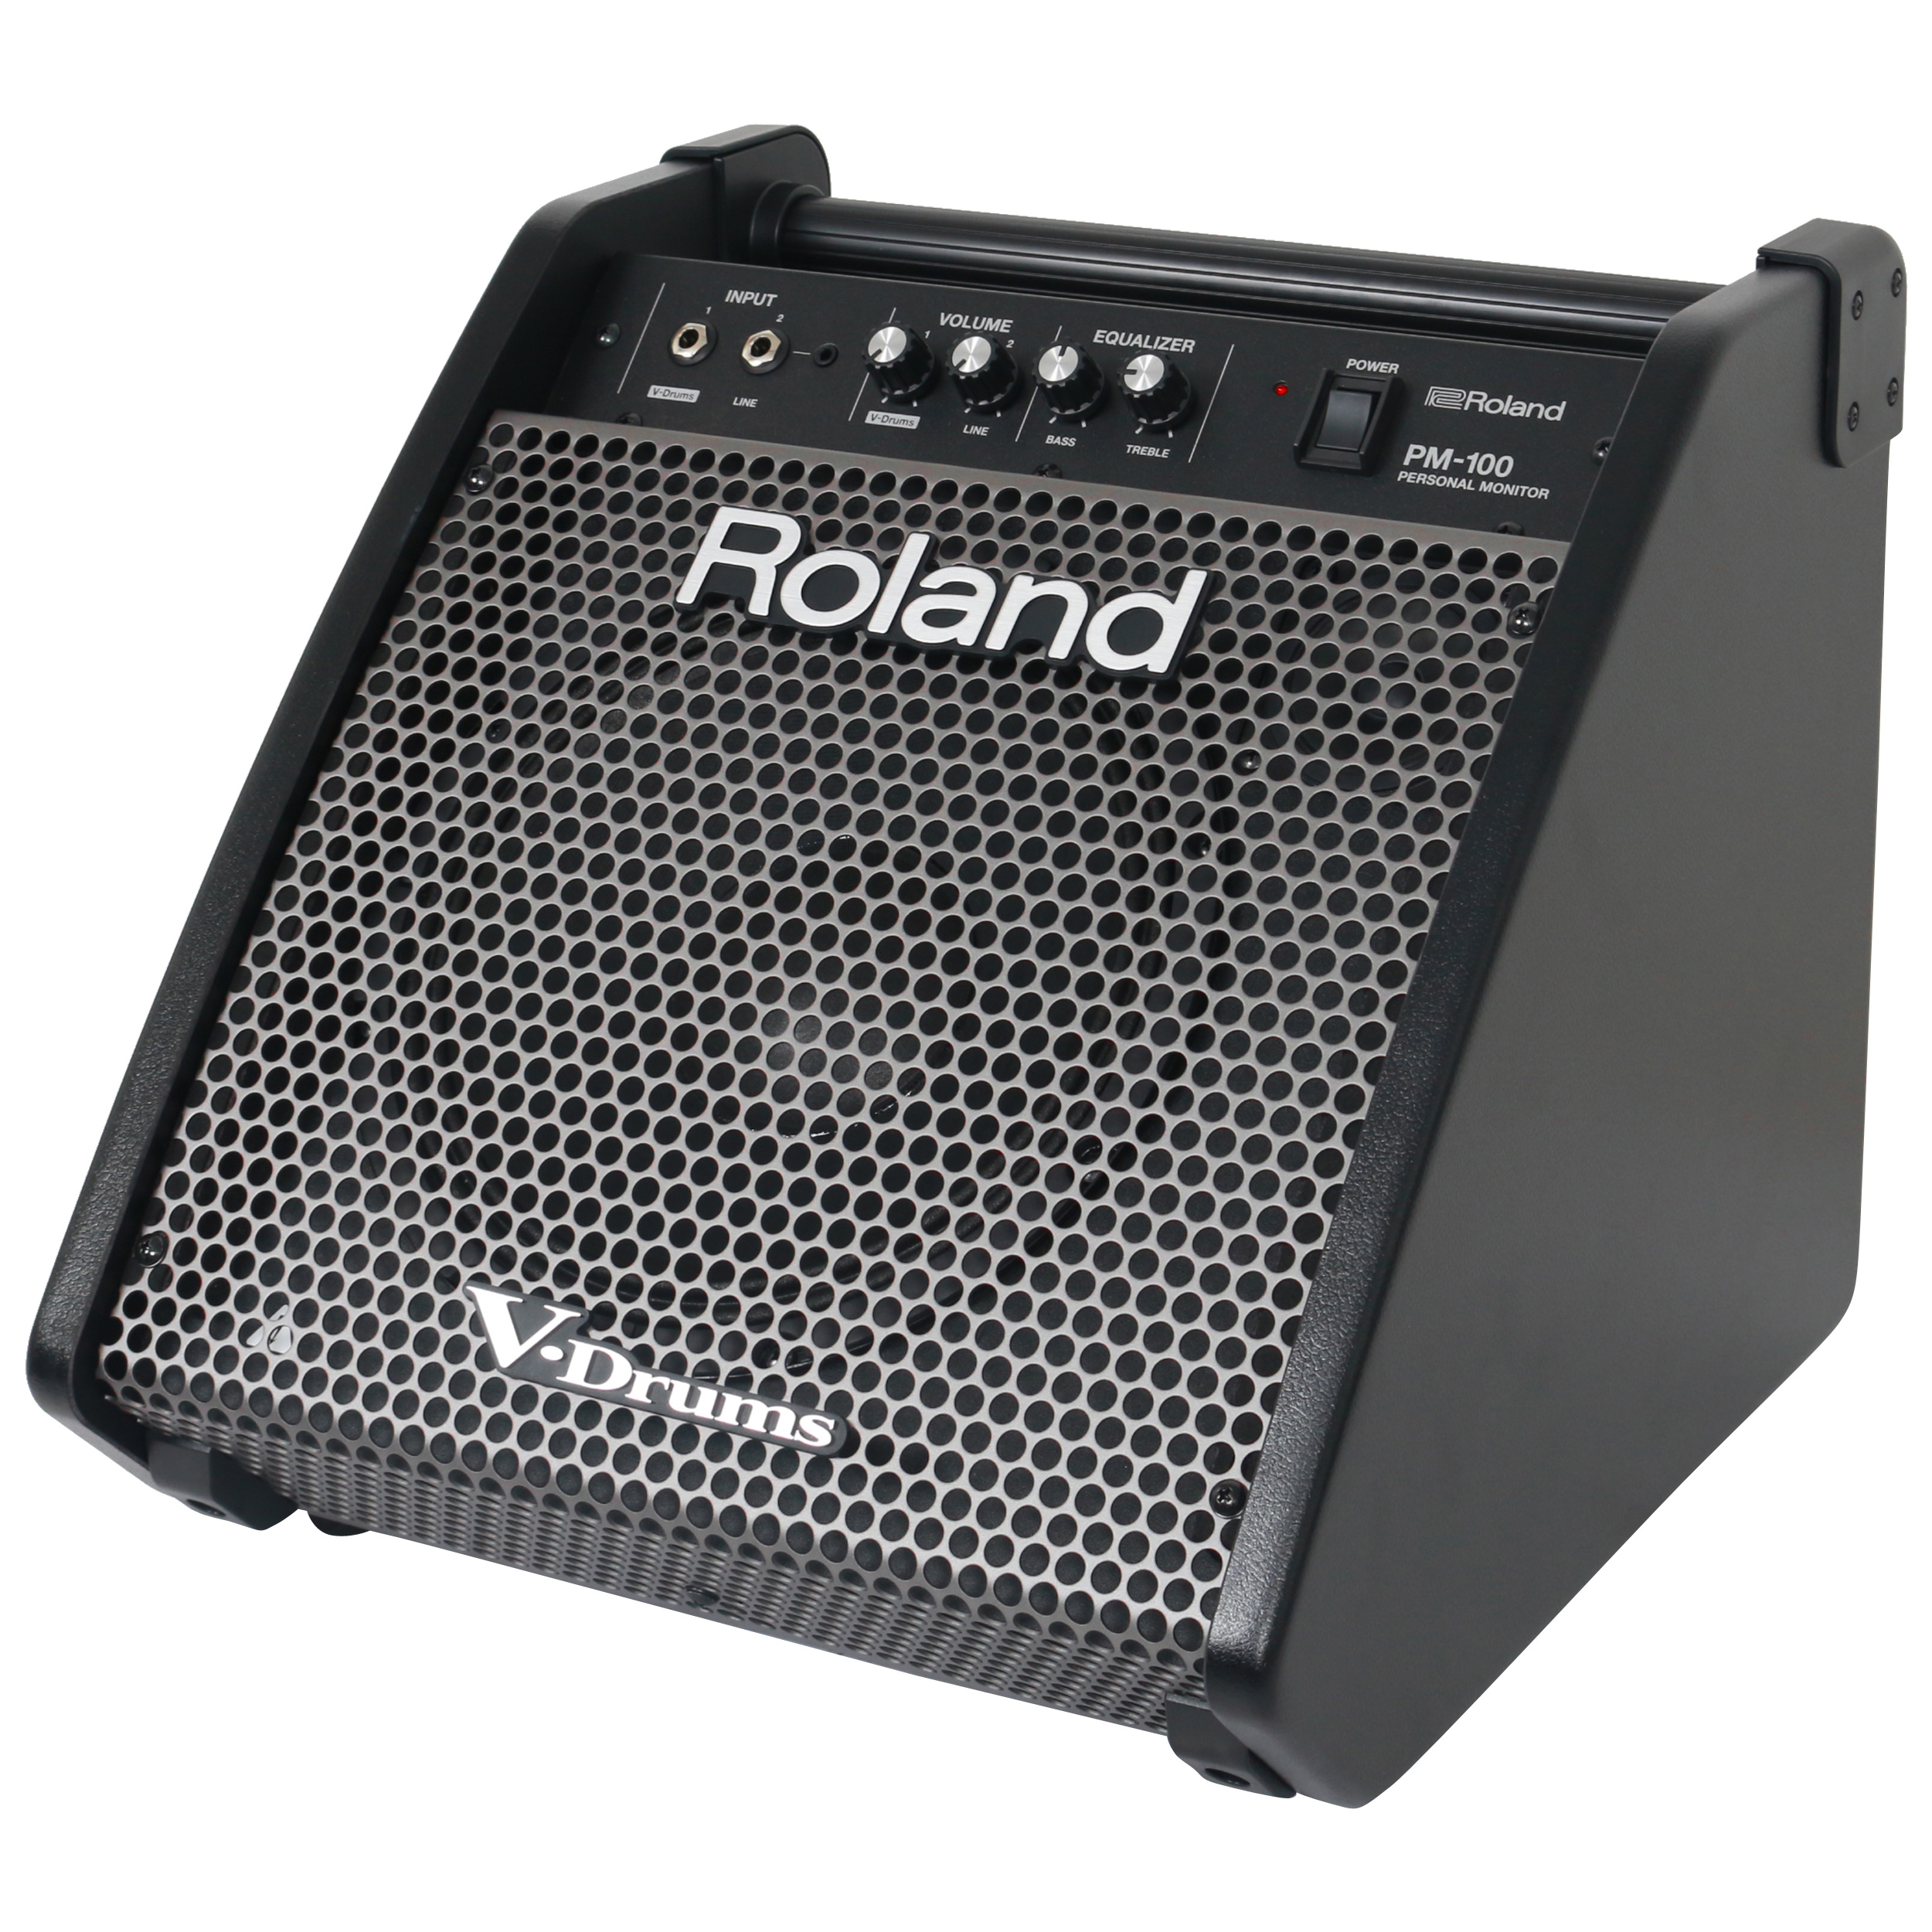 (B Ware) Roland PM 100 drum monitor for V Drums 80W